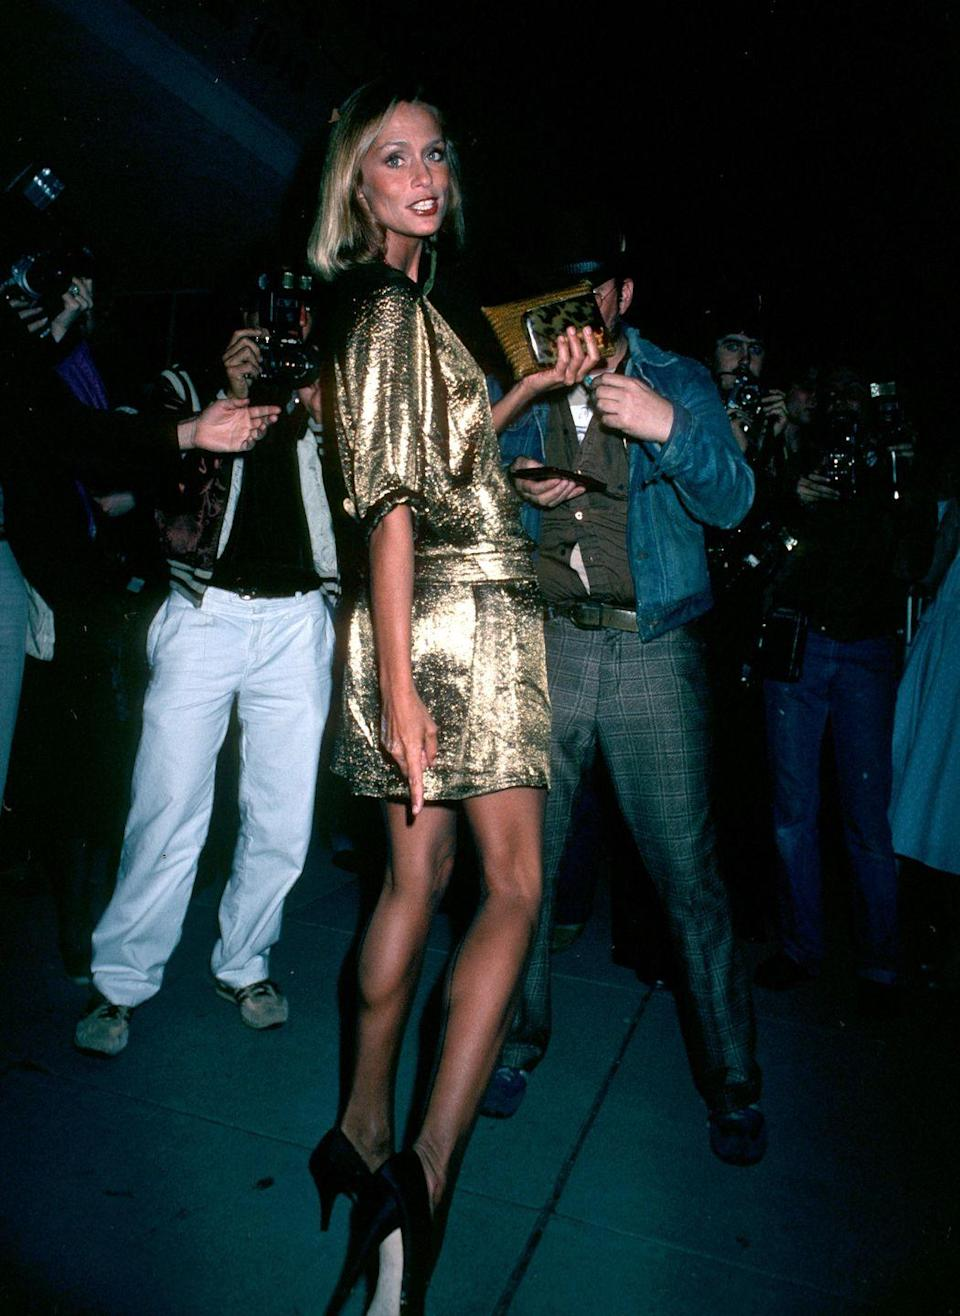 <p>Although sporting a mini dress was definitely not traditional Oscars style, Hutton made sure to break dress code and have fun while doing it. More room for dancing, right?</p>